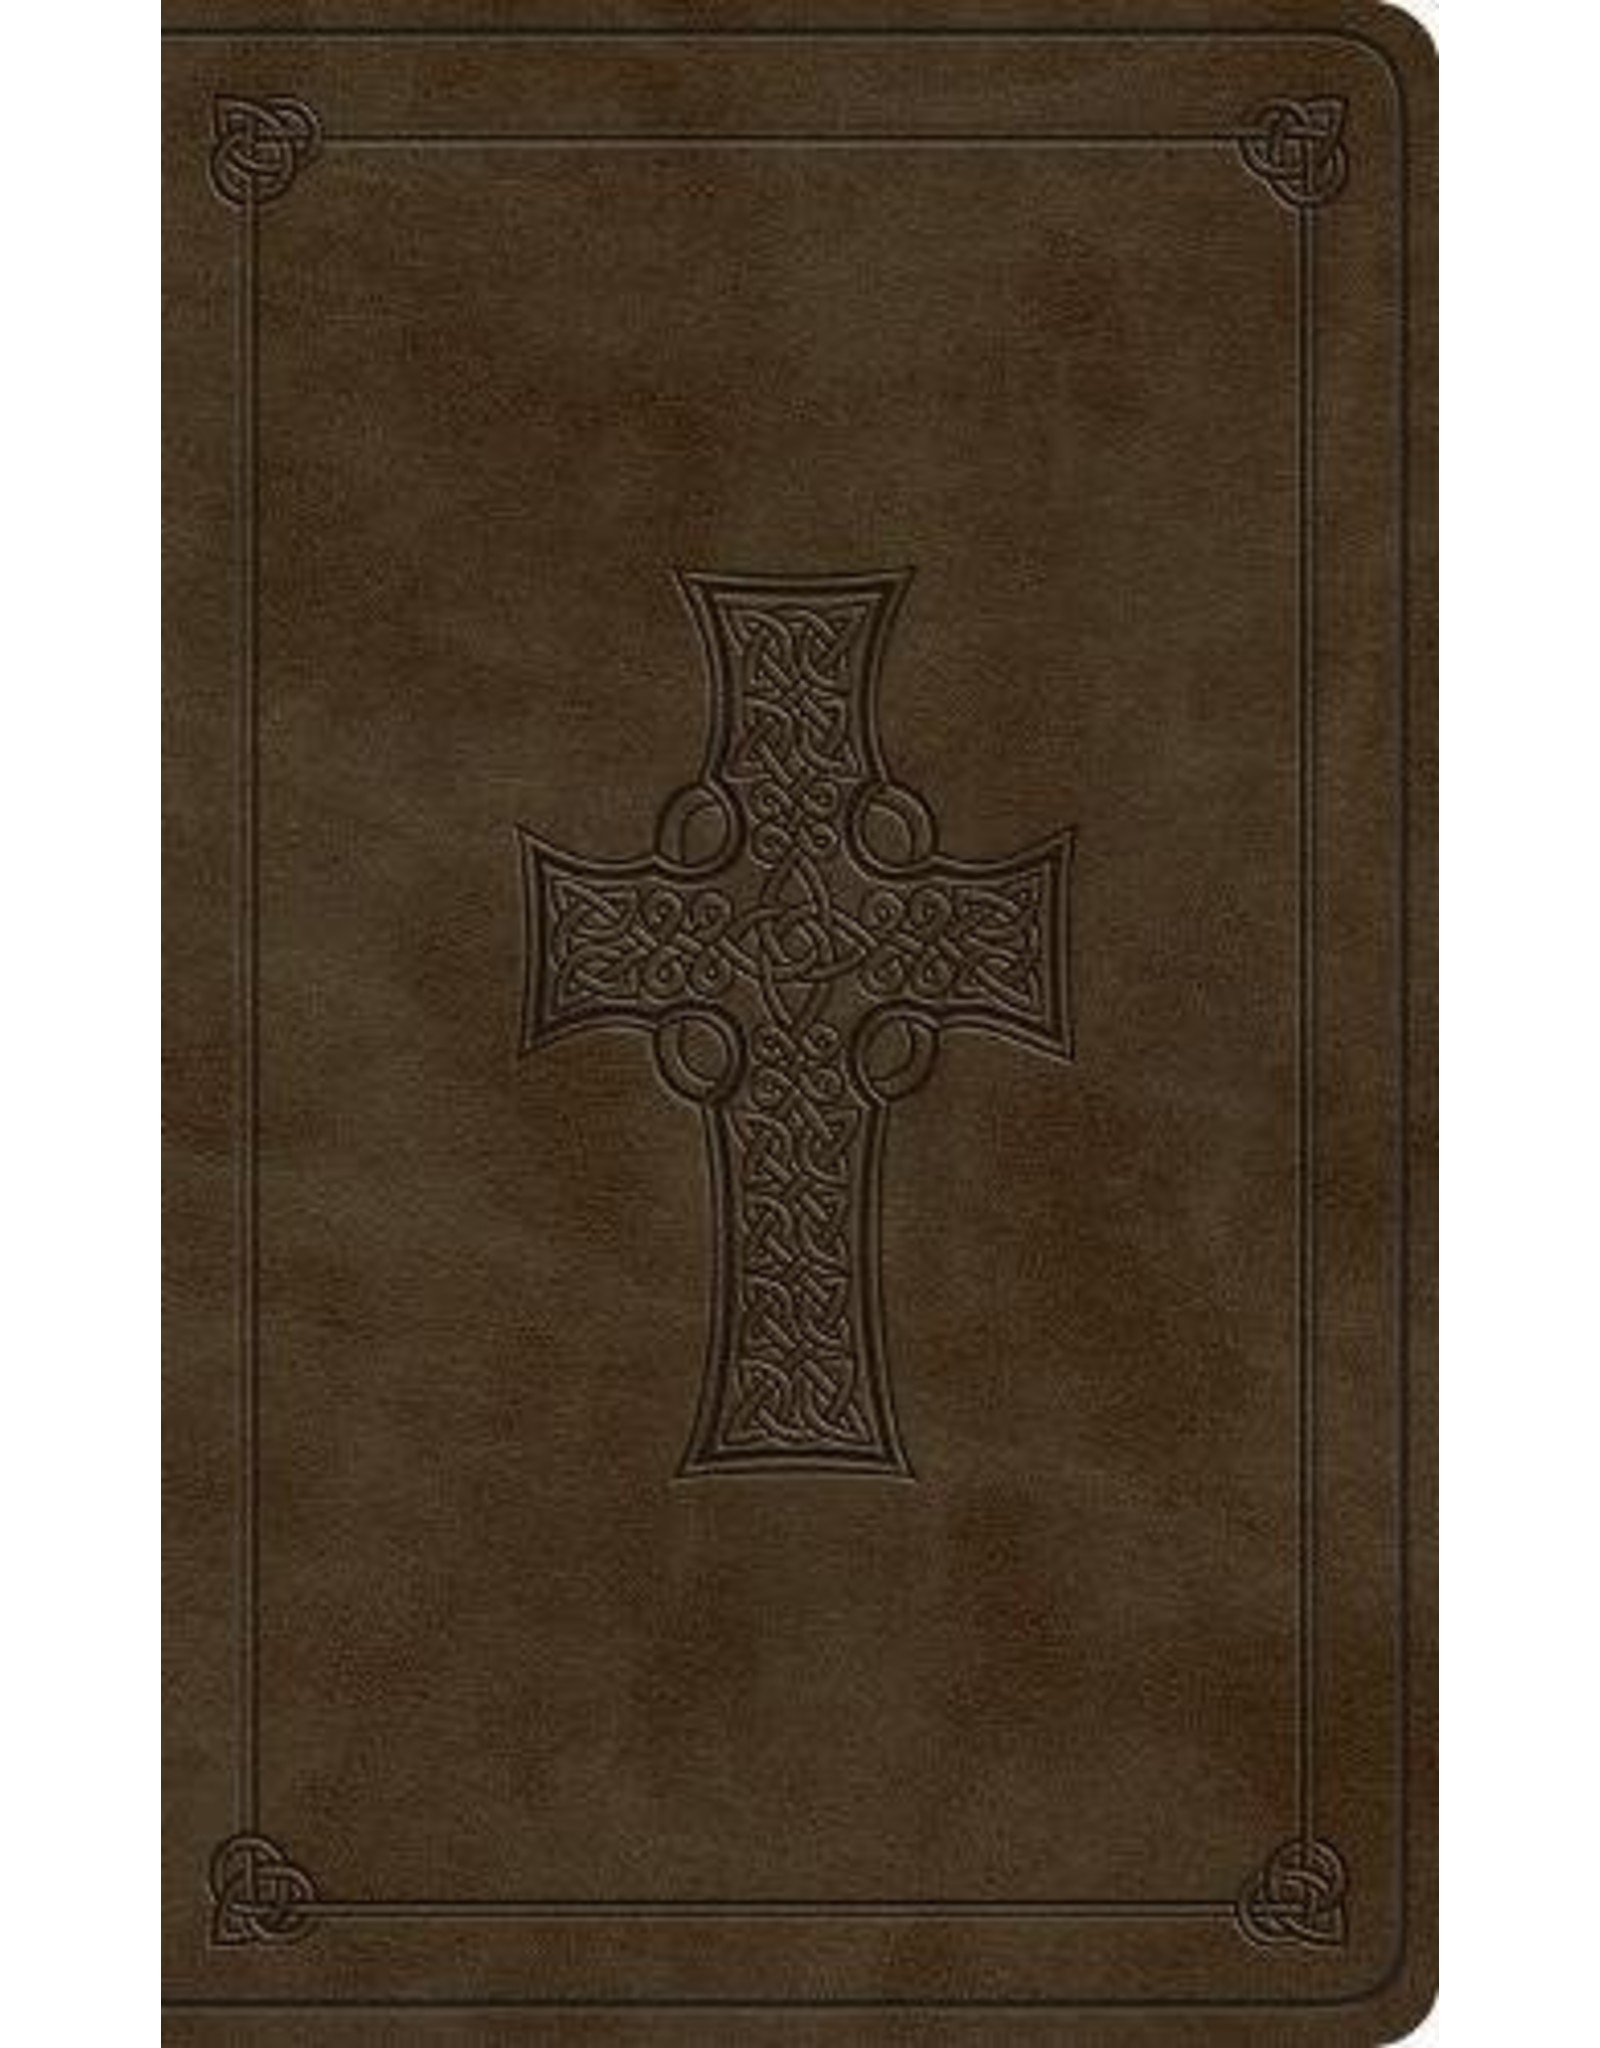 Crossway / Good News ESV Vest Pocket NT with Psalms and Proverbs (Trutone, Olive, Celtic Cross)